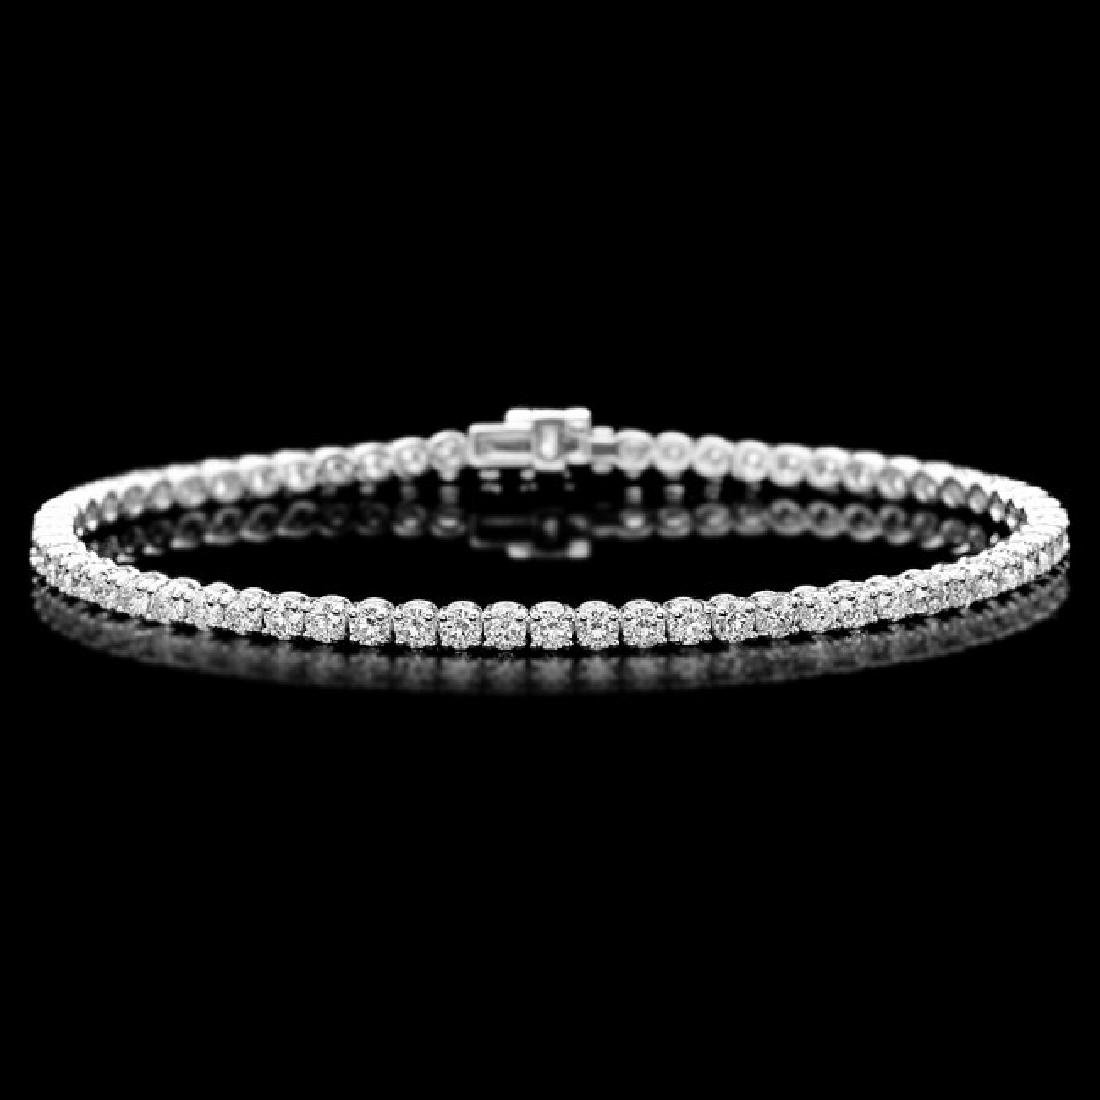 18k White Gold 4.50ct Diamond Bracelet